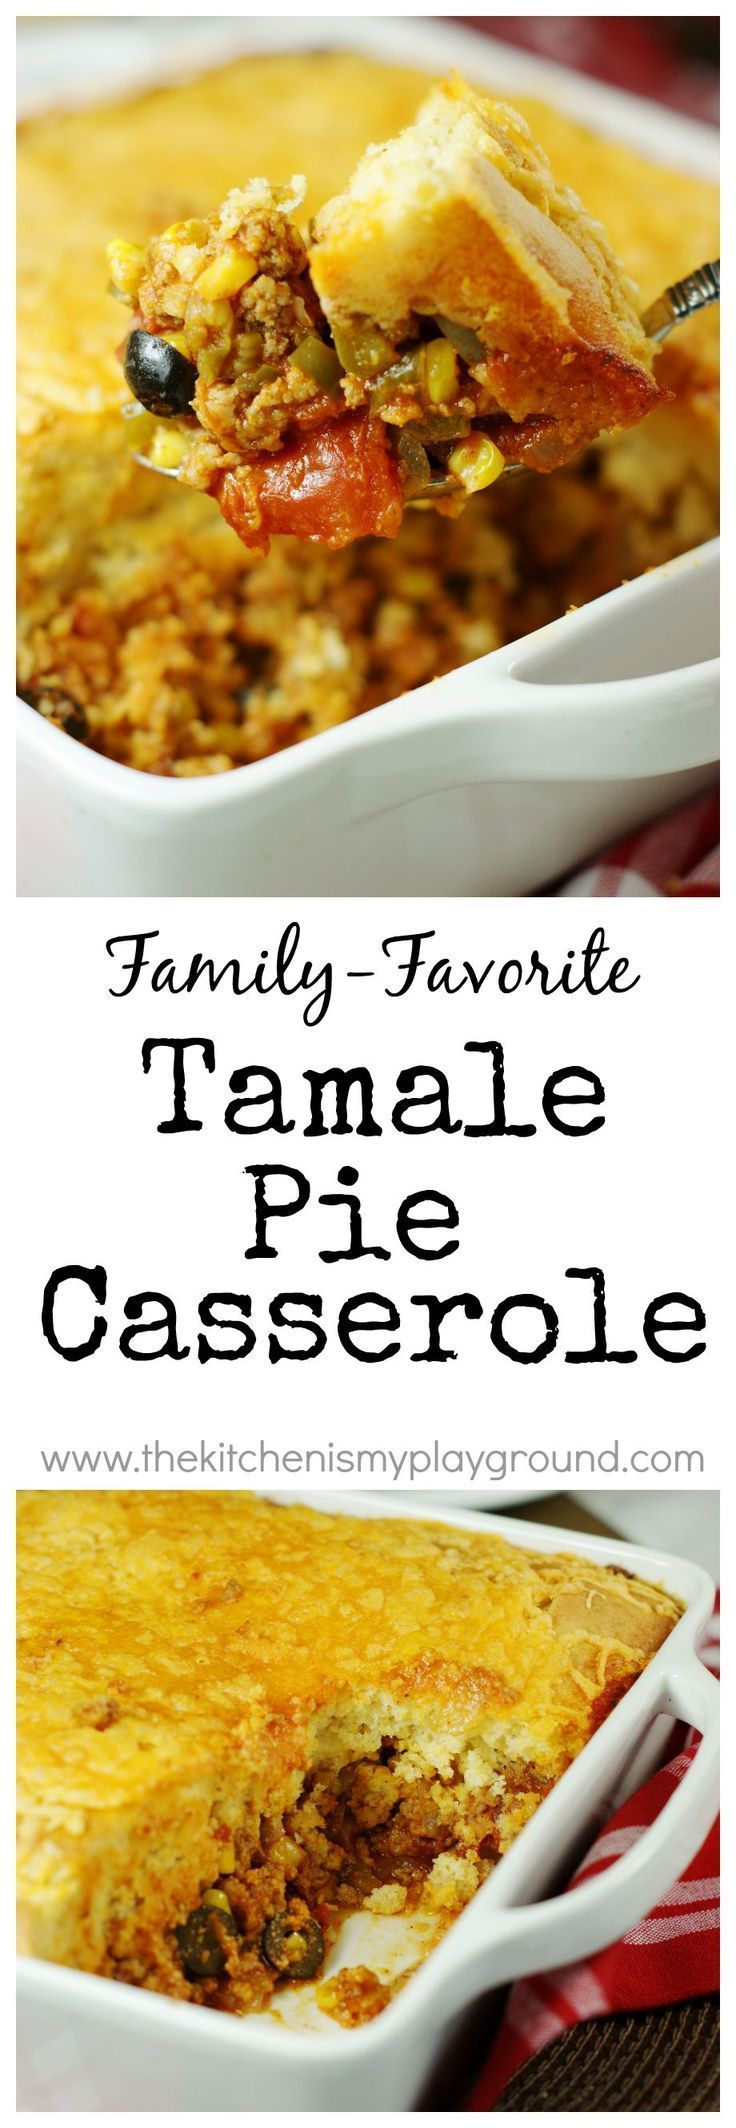 Tamale Pie Casserole ~ spicy ground turkey & vegetable filling topped with a thick layer of golden cornbread. A family favorite! www.thekitchenismyplayground.com #mexicancornbreadcasserole